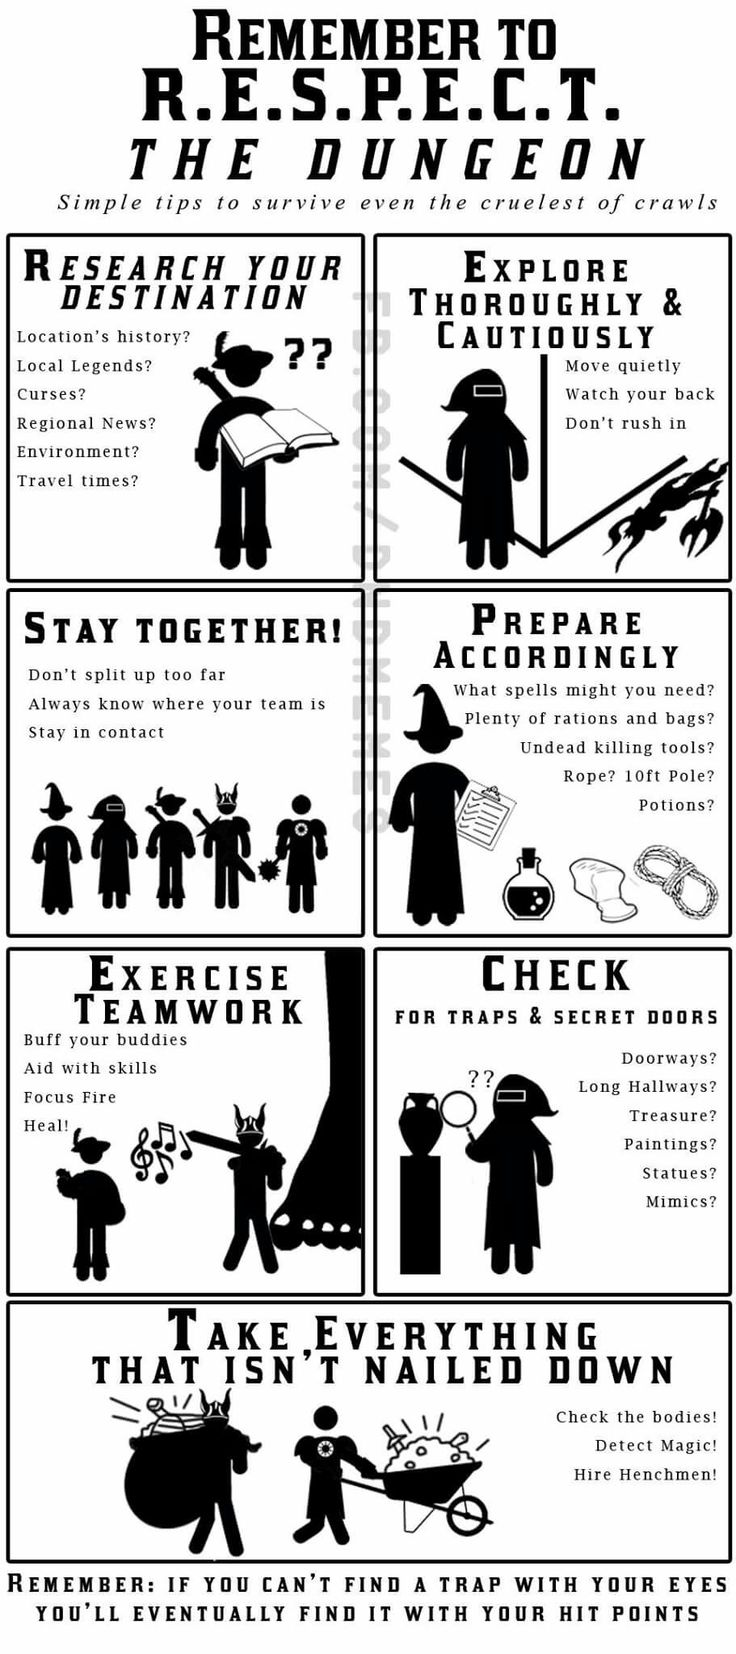 R.E.S.P.E.C.T. the dungeon! Excellent advice.